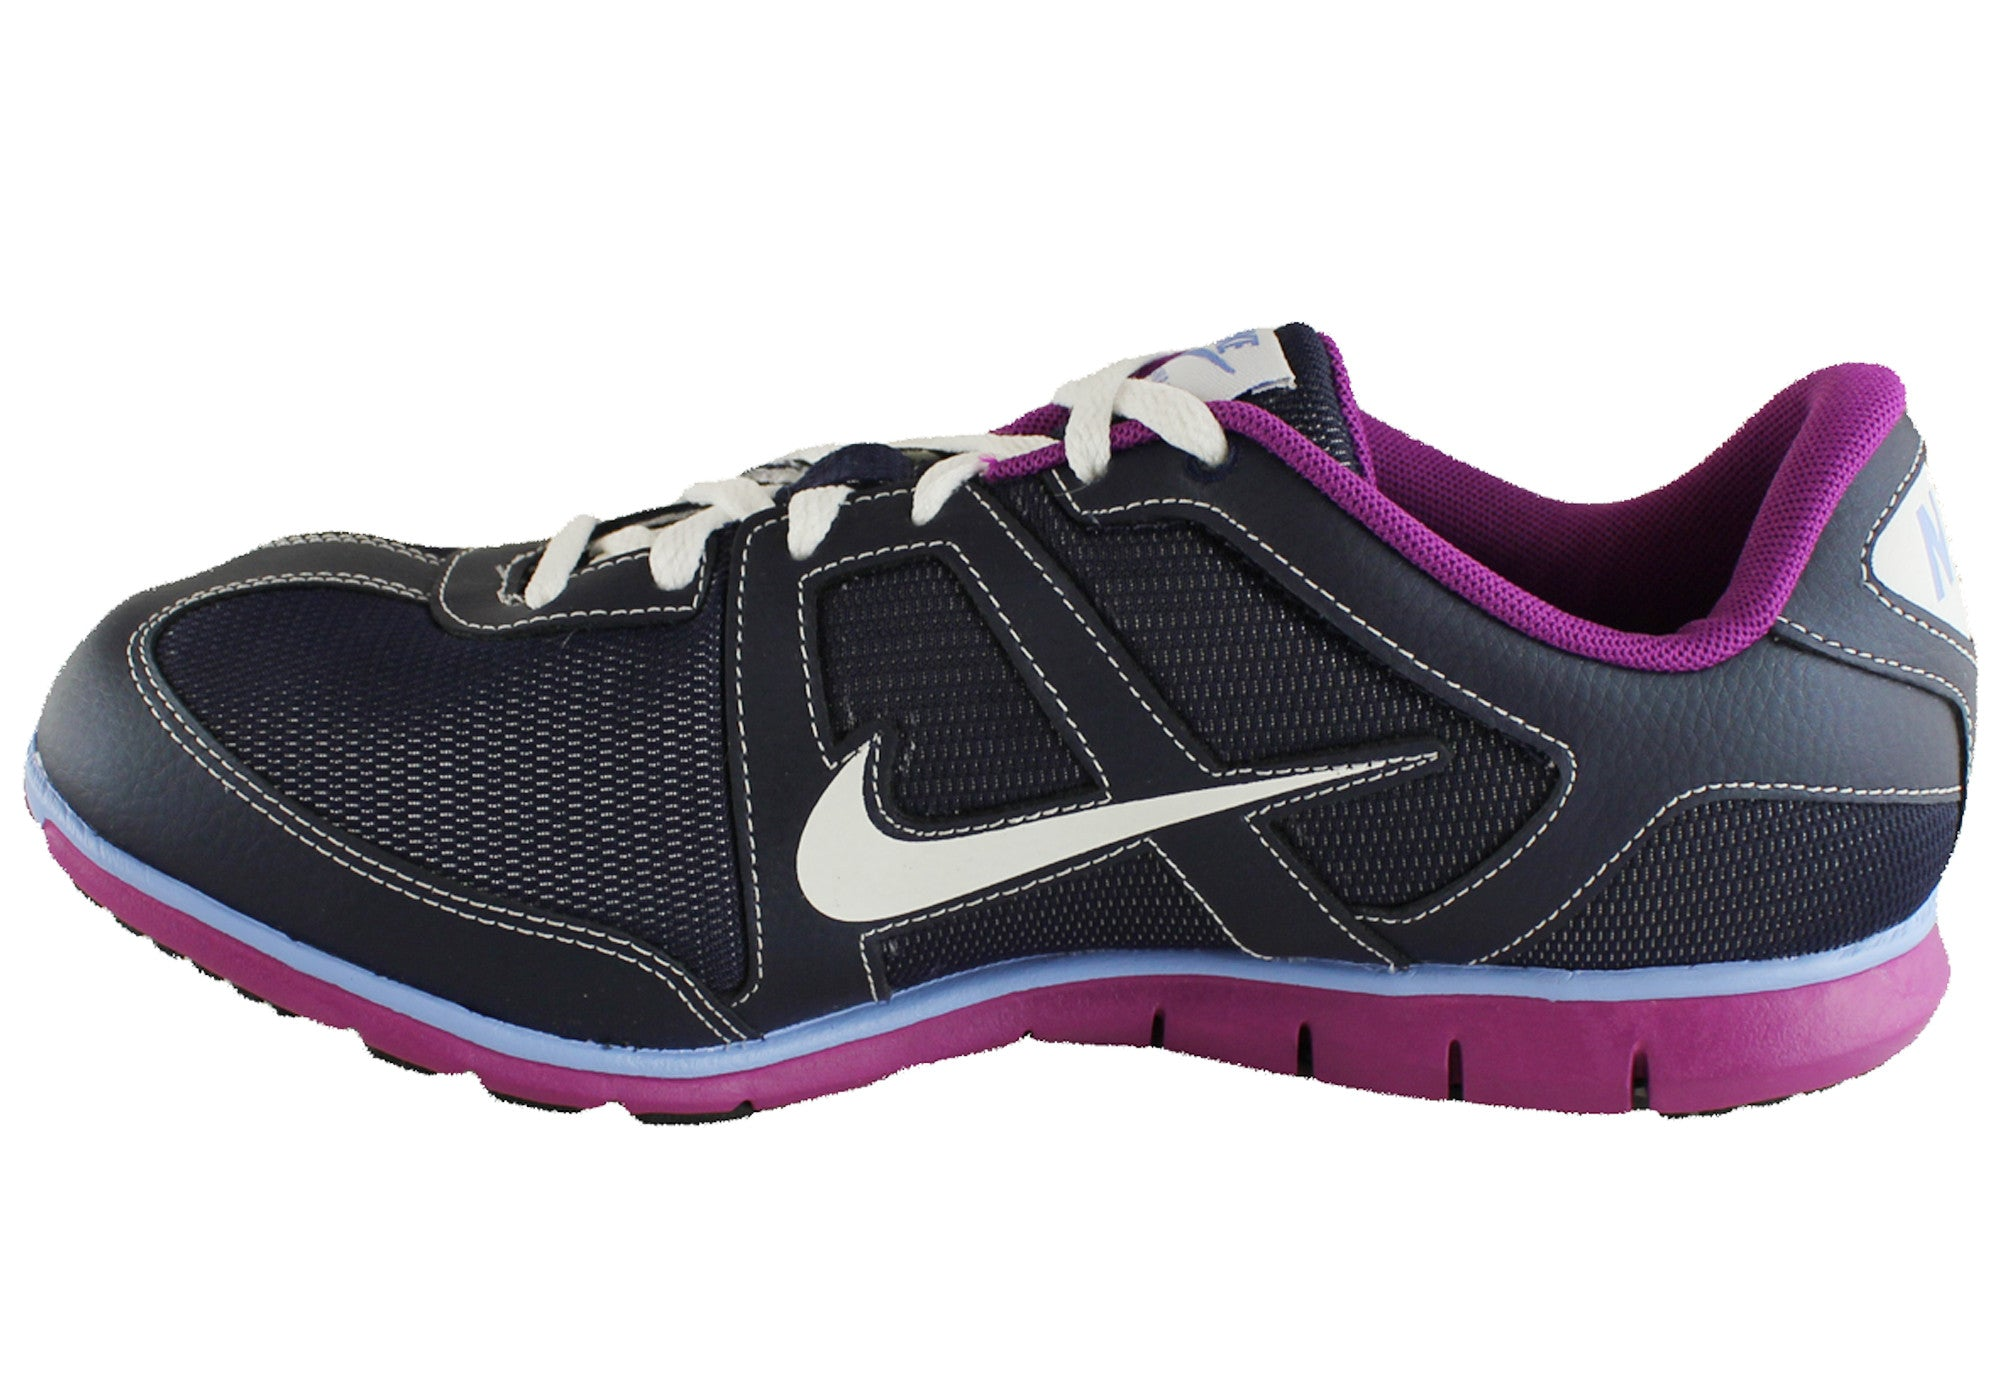 Nike Oceania NM Womens Sports/Casual Shoes